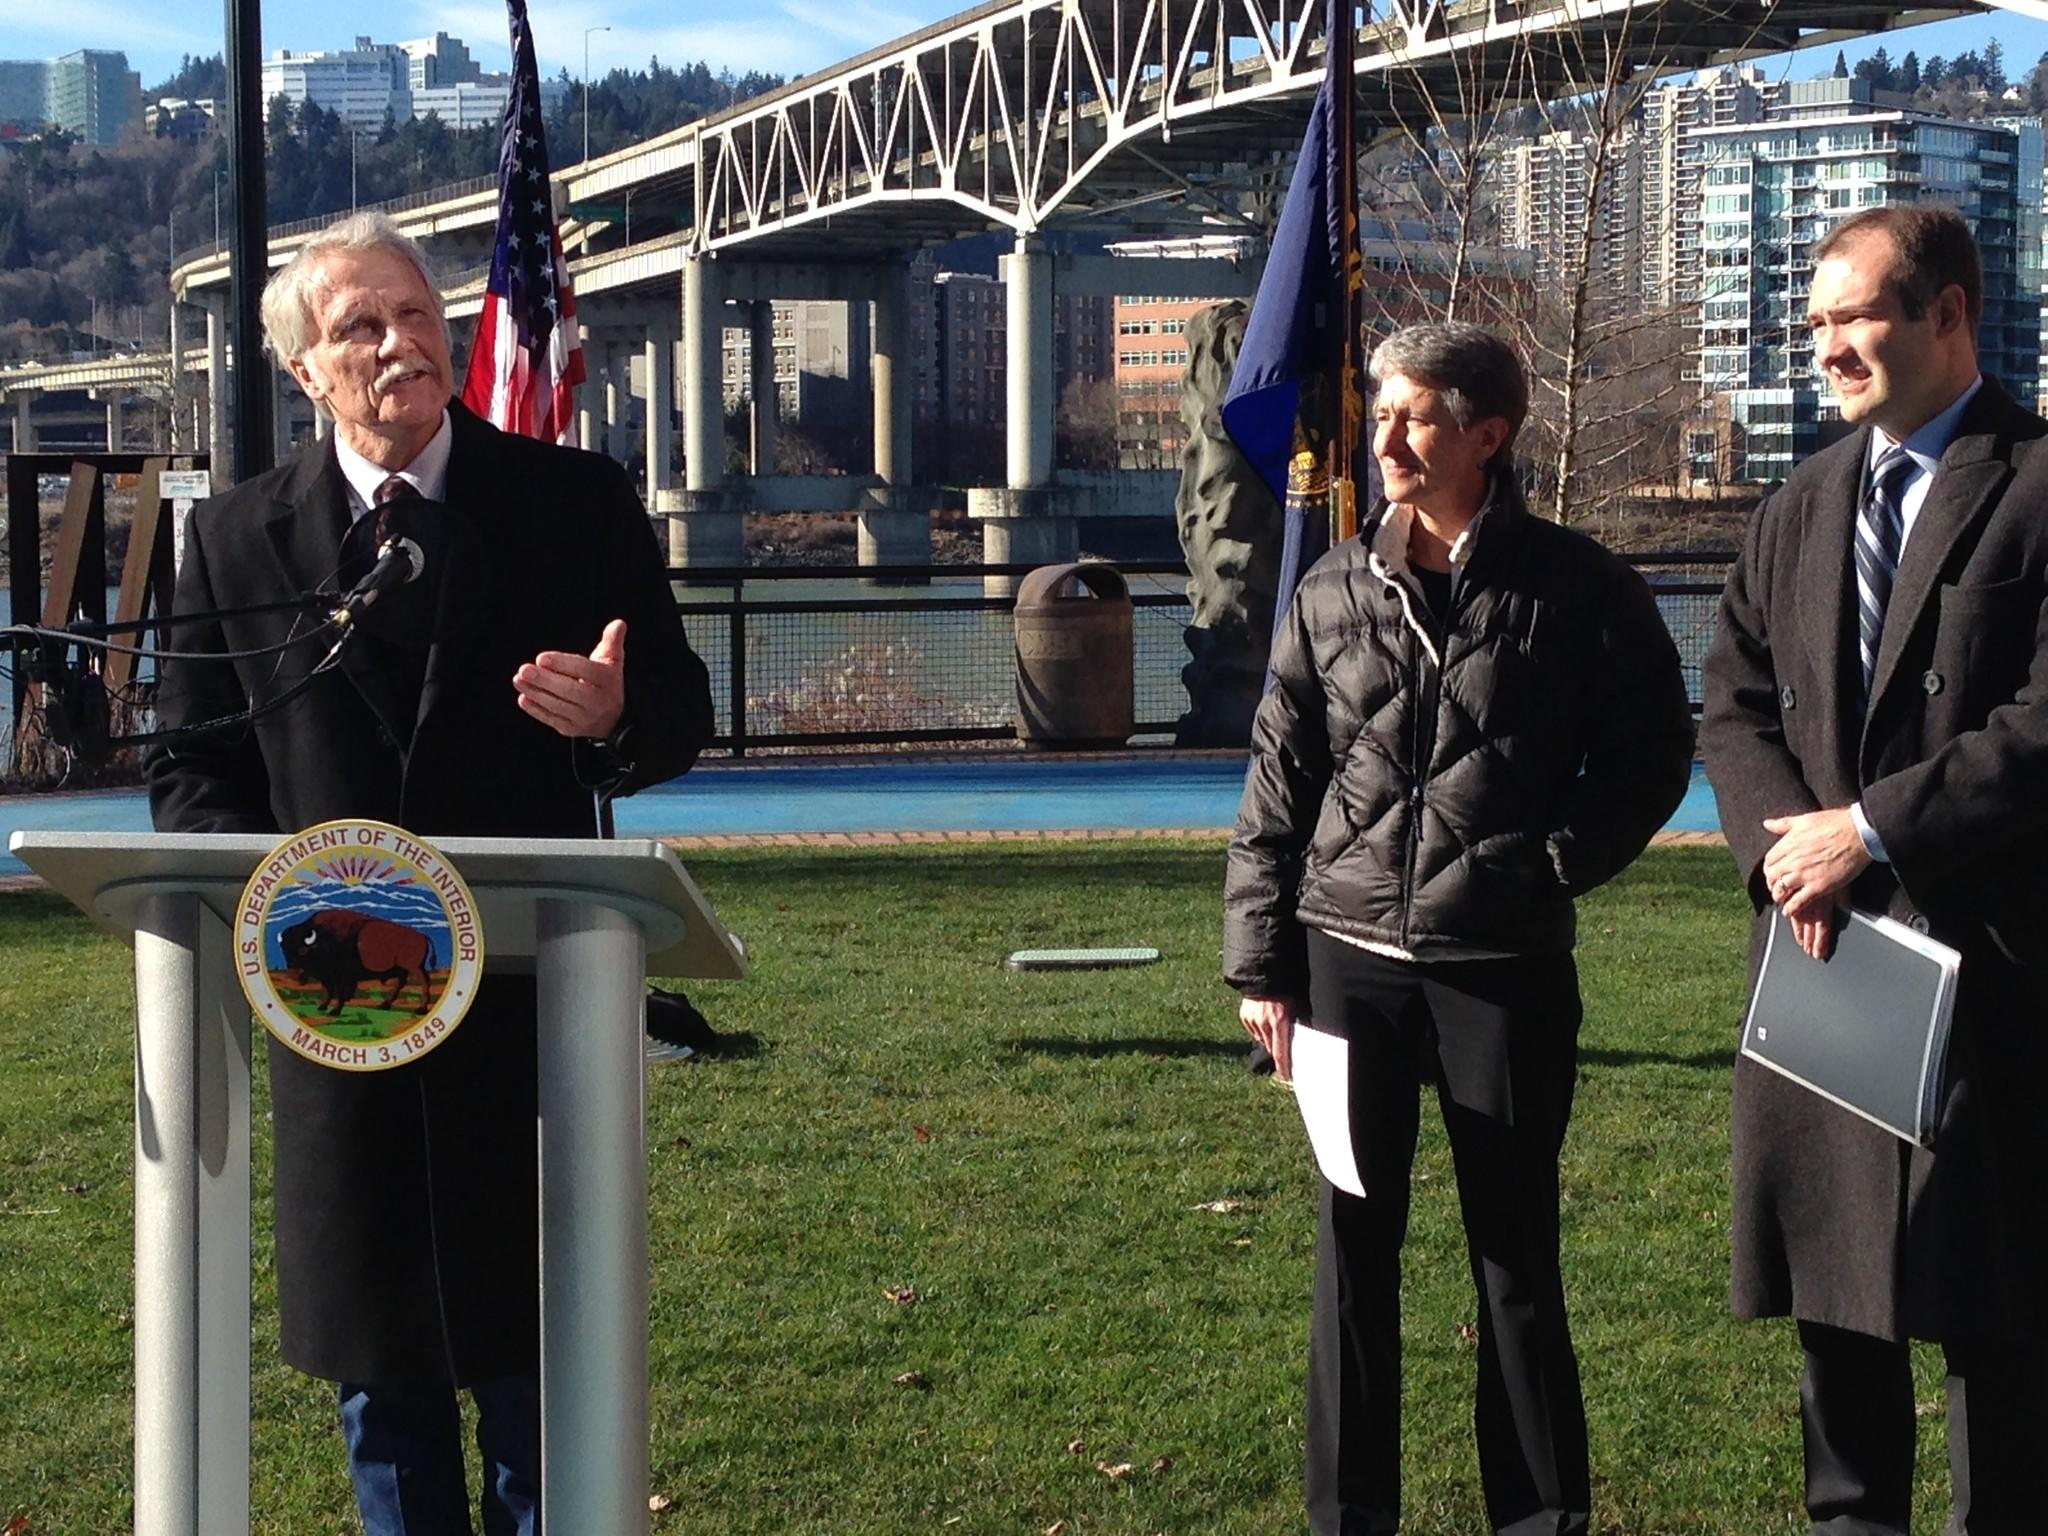 Oregon Gov. John Kitzhaber, left, with Interior Secretary Sally Jewell, announces plans to develop the West Coast's first offshore wind energy farm. Bureau of Ocean Energy Management Director Tommy Beaudreau is at right.